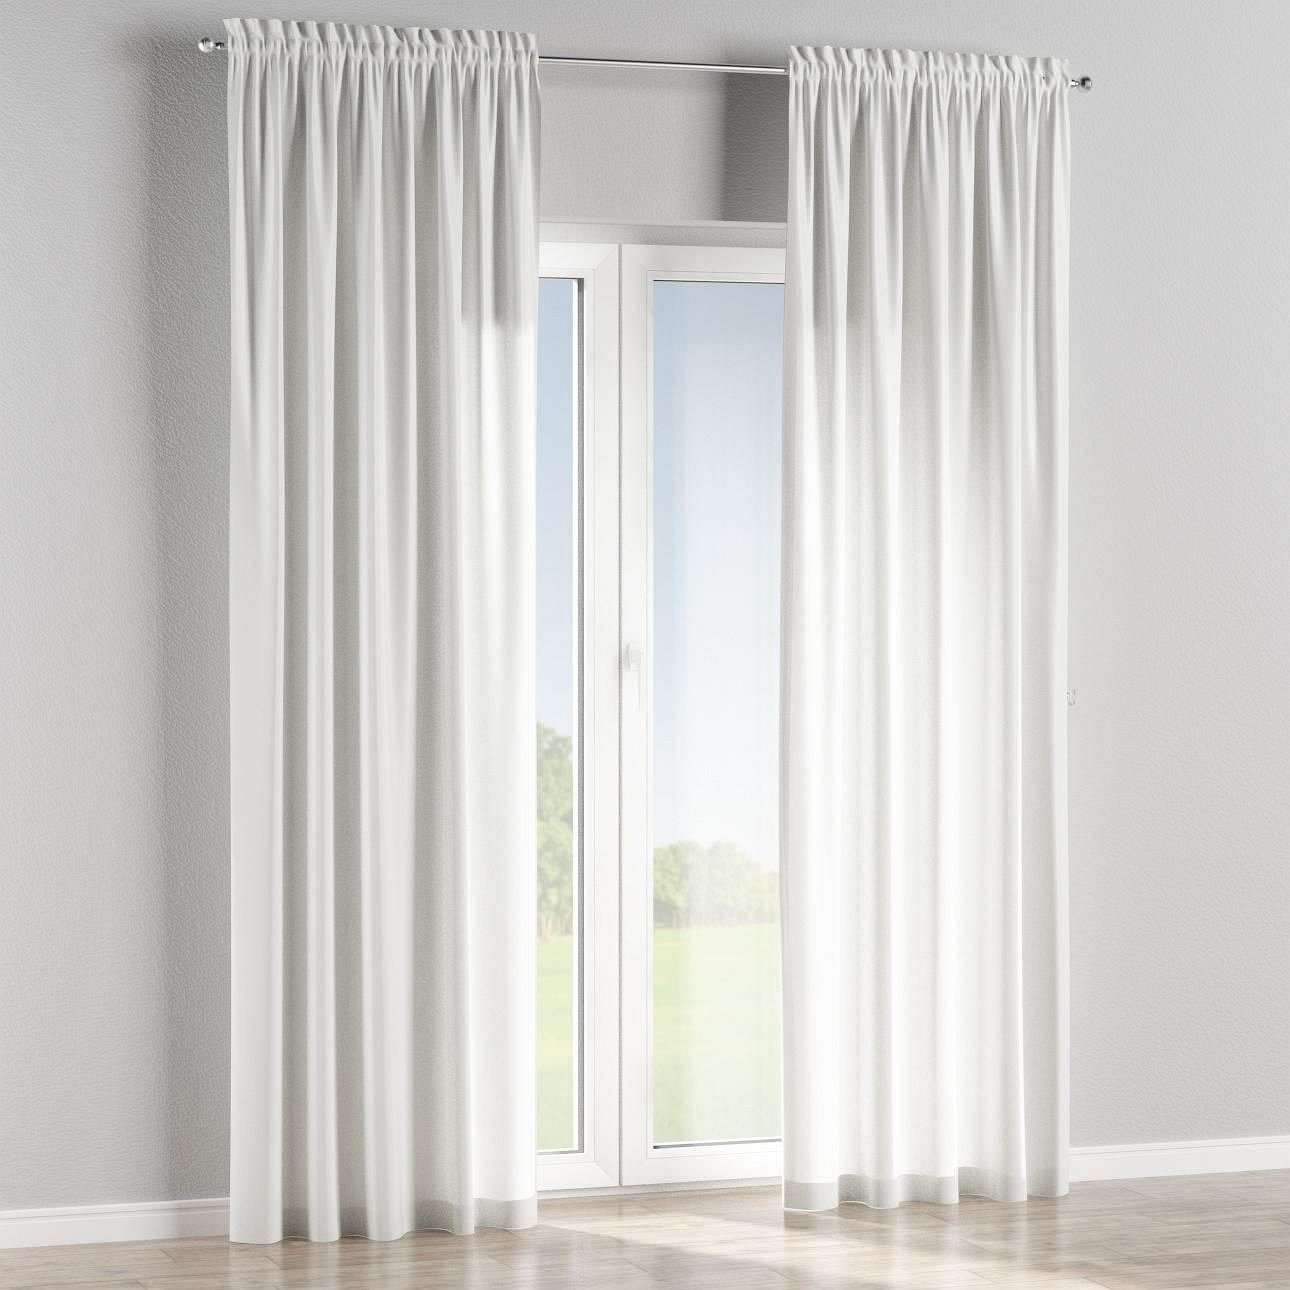 Slot and frill lined curtains in collection Marina, fabric: 140-13